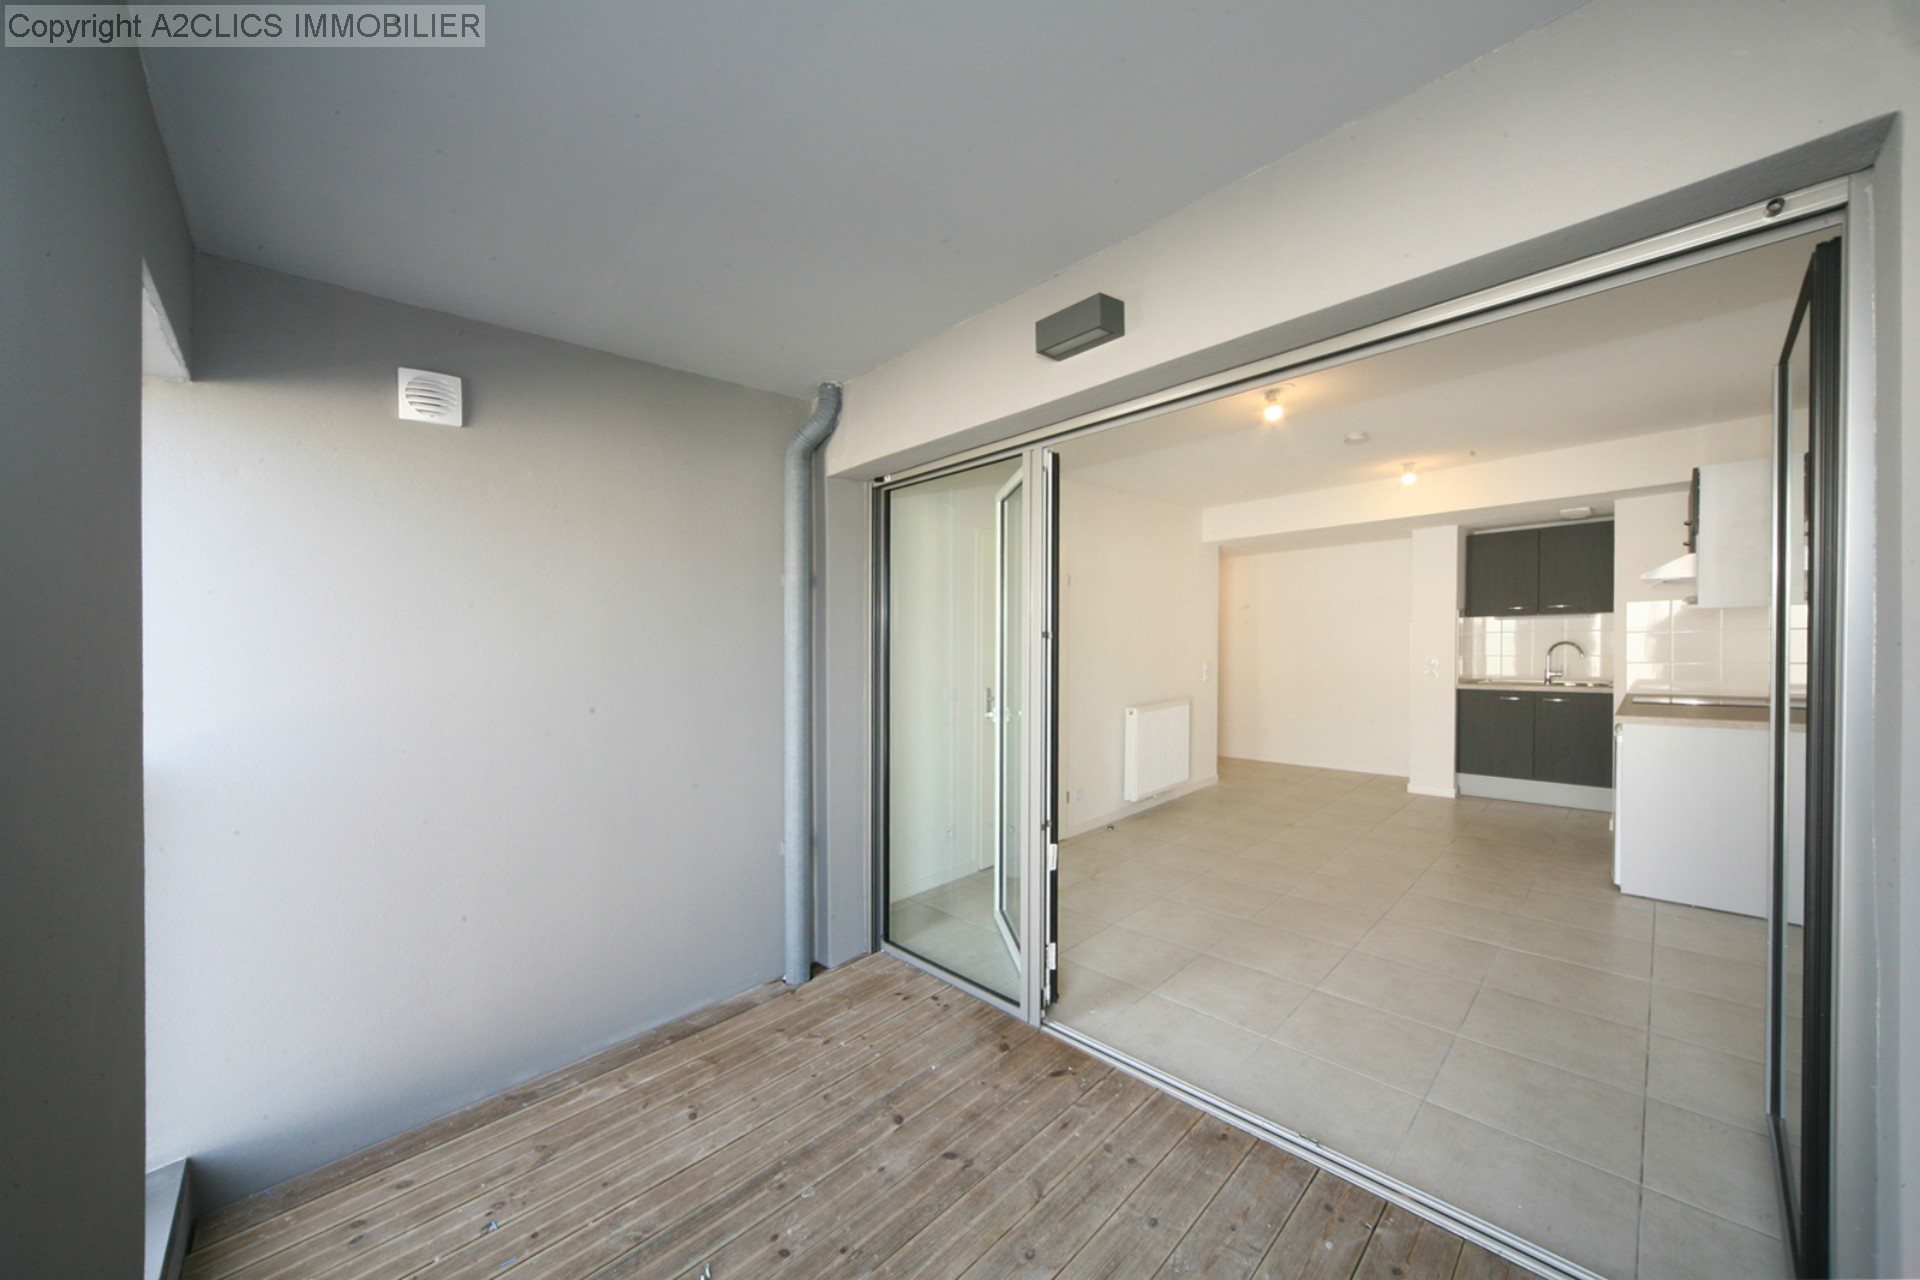 Faire 2 Appartements Dans Une Maison location appartement à bordeaux boulevard albert 1er, 2